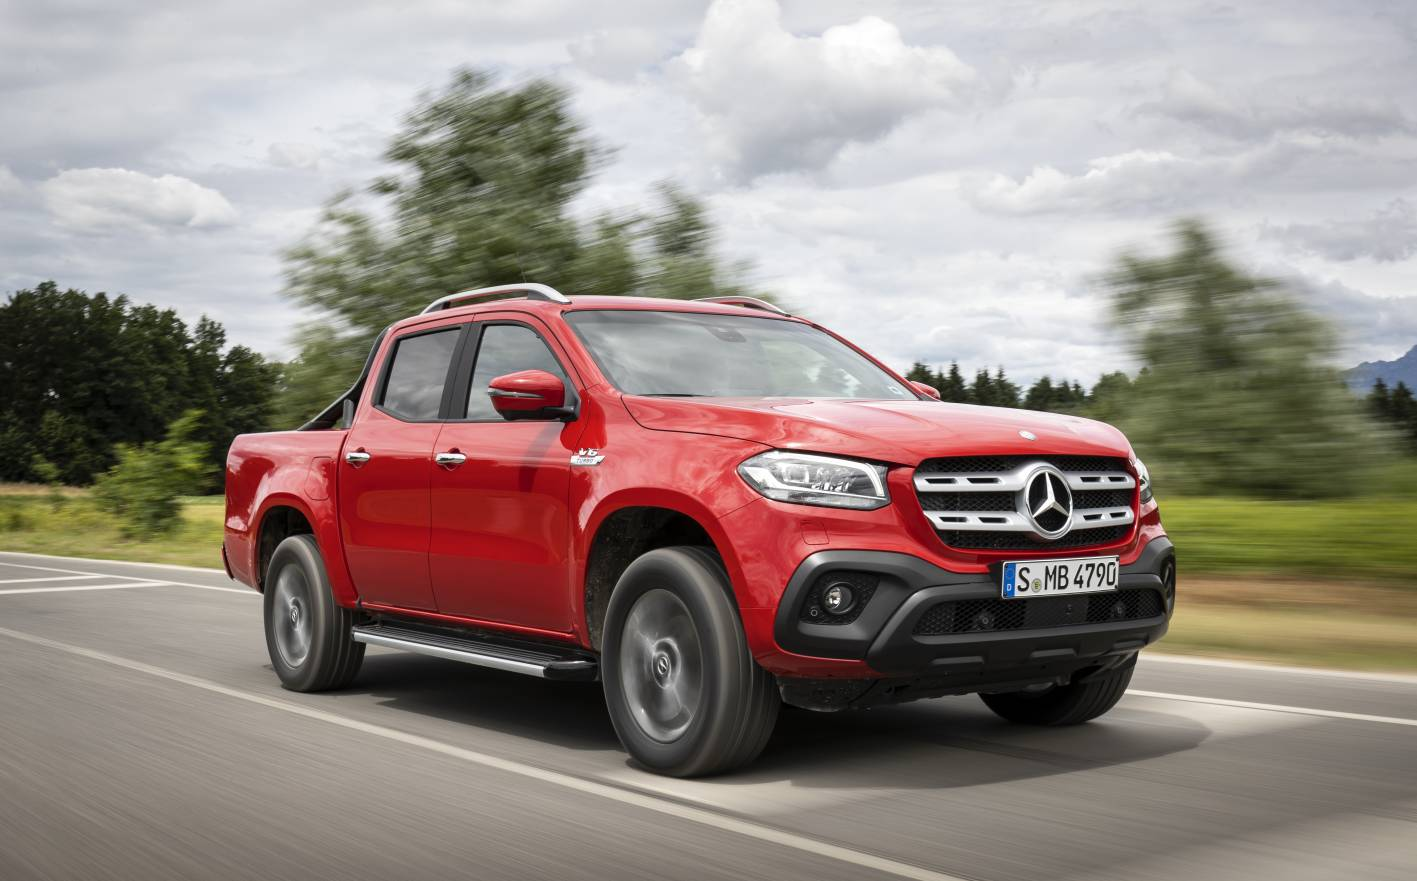 Teppich 350 X 350 2018 Mercedes Benz X 350 D Price Specs And Release Date